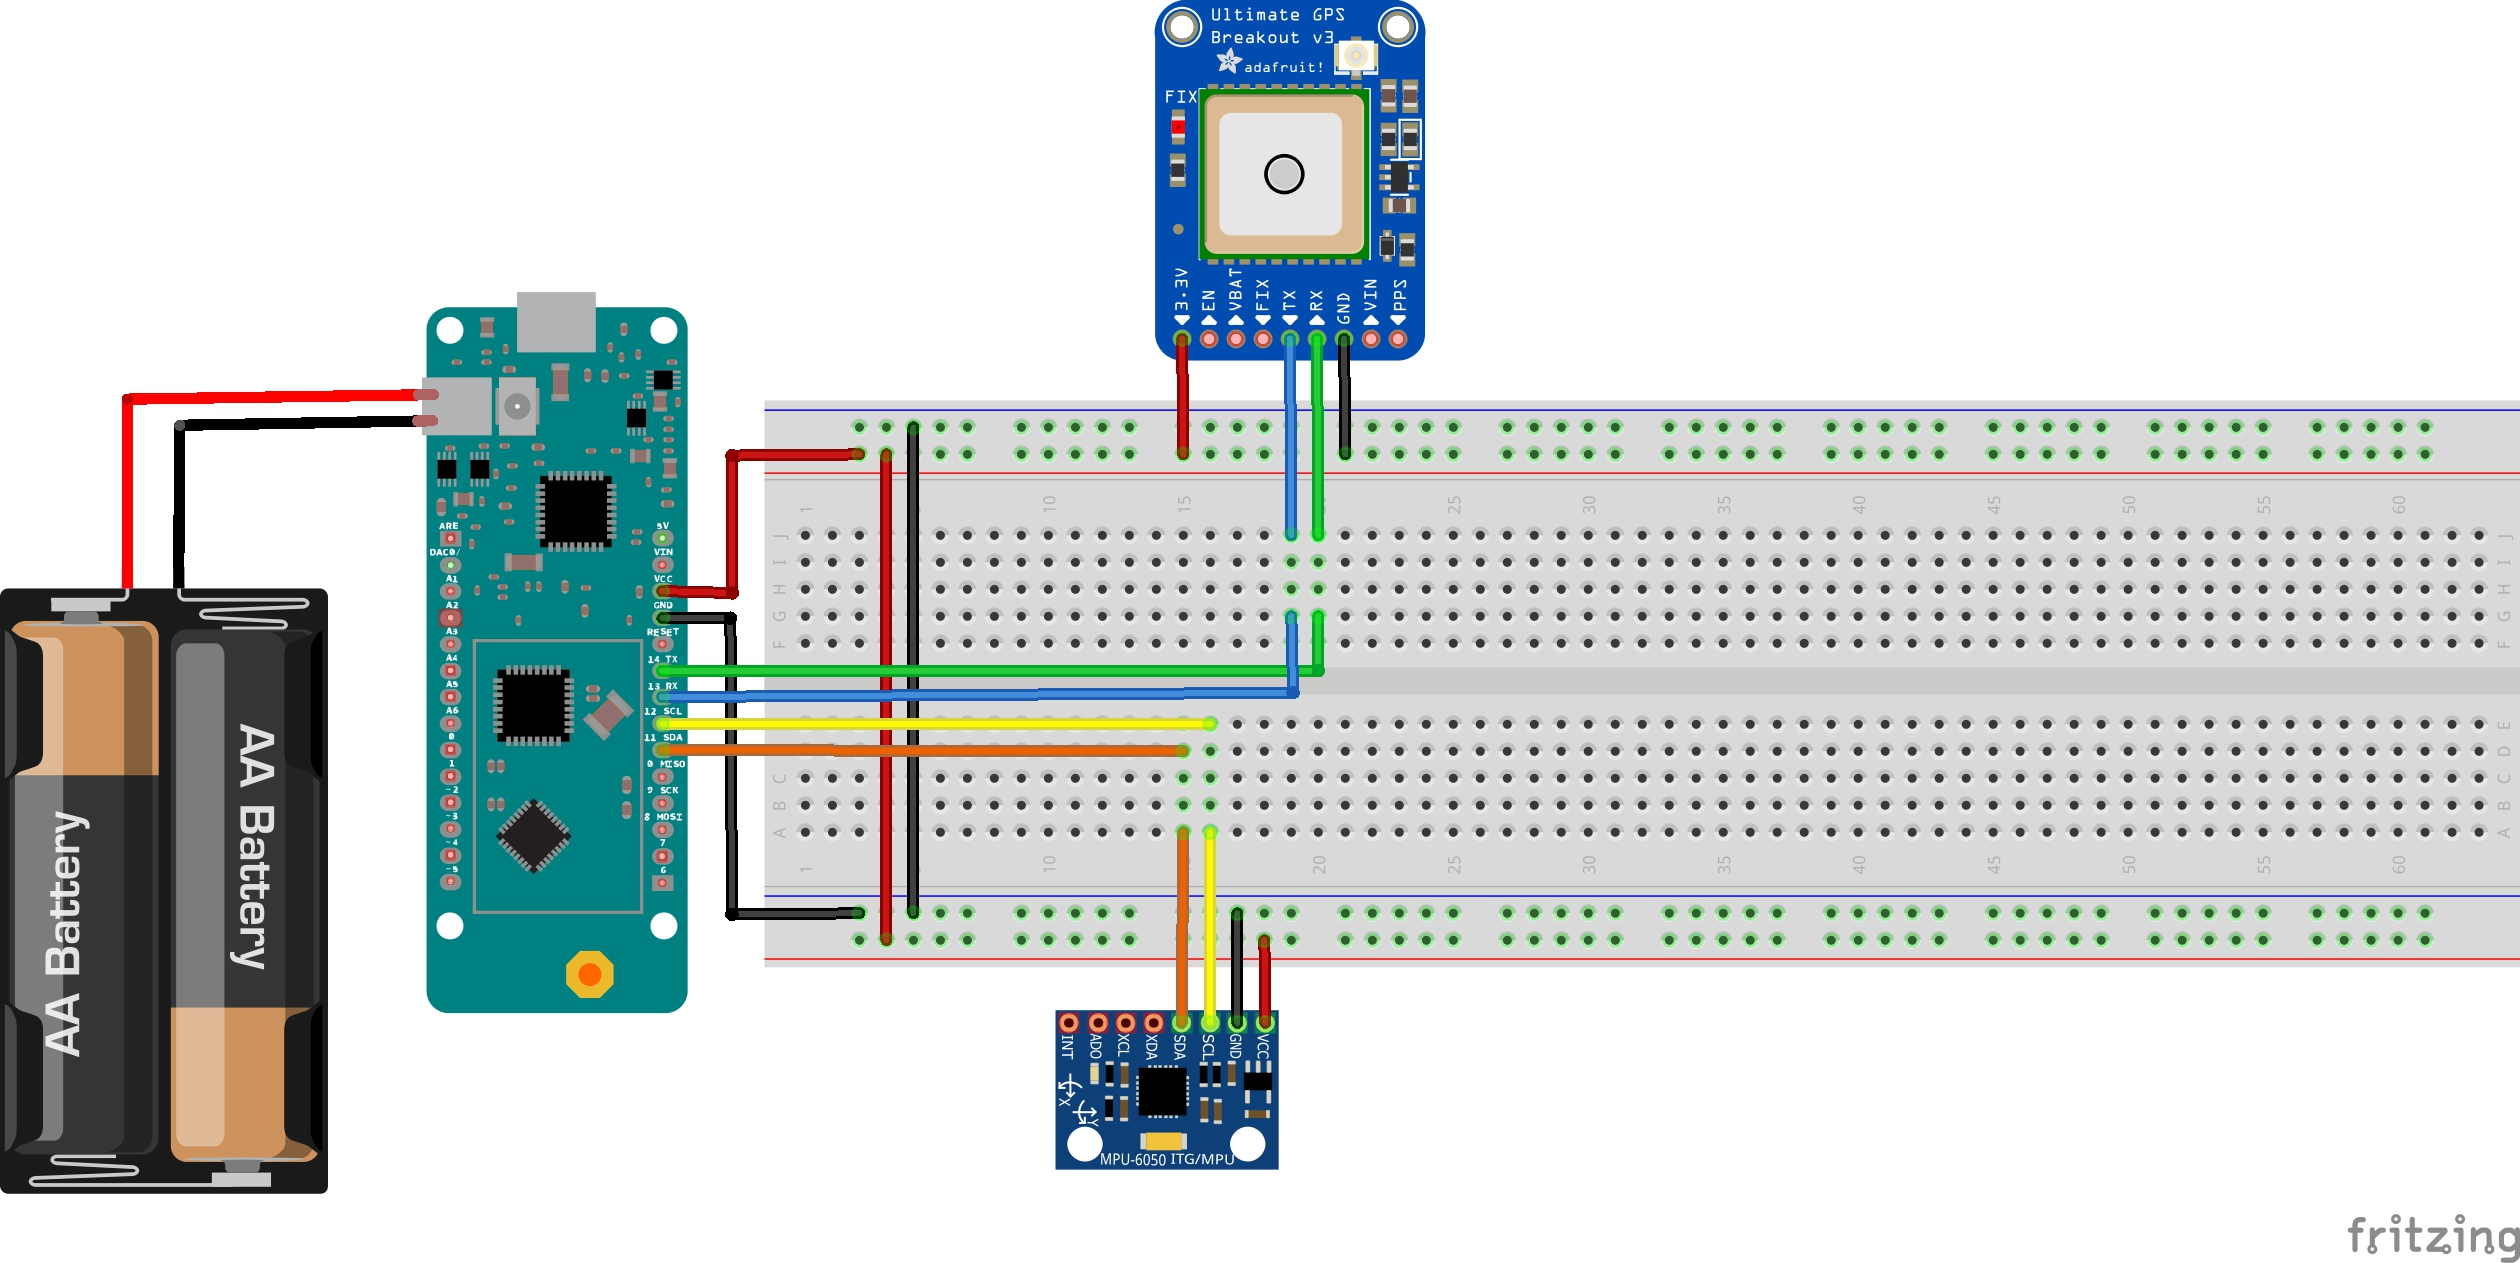 Bike Tracking System With Dead Man Alert How To Build A 555 Timer Based Motorcycle Alarm Wiring Bb Lrzkqk1tiy